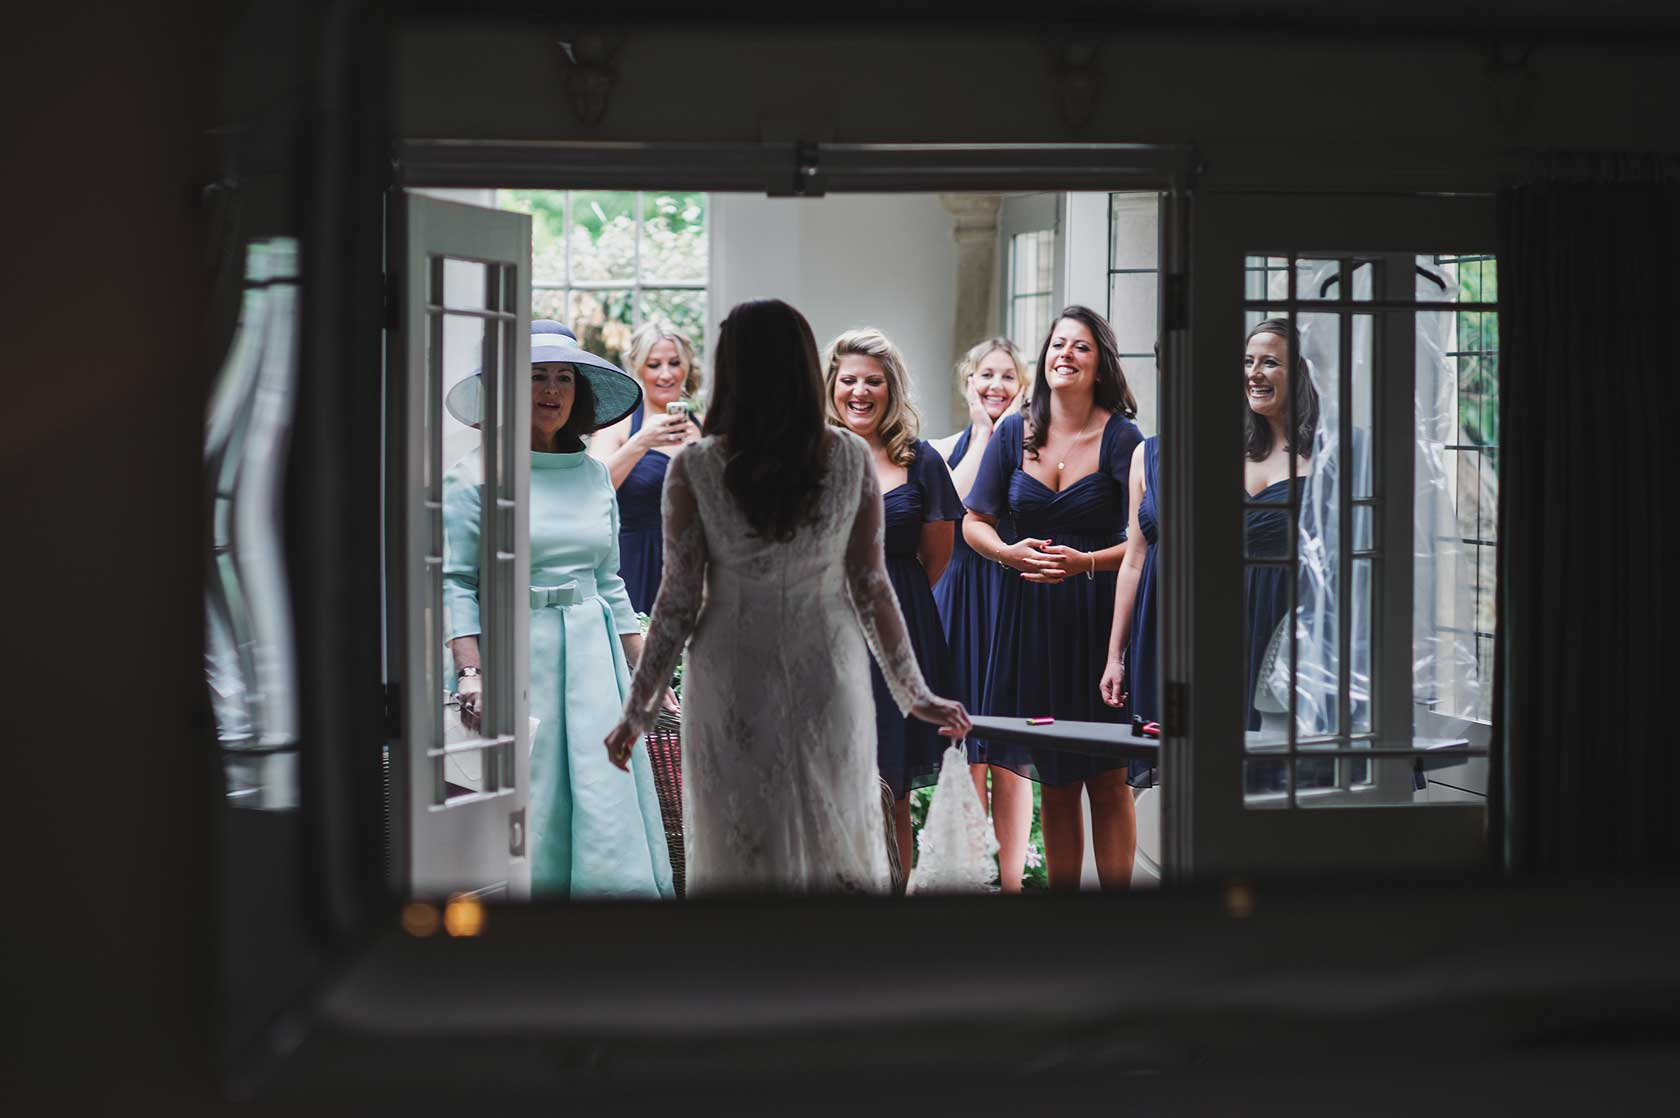 Reportage Wedding Photography at Barnsley House